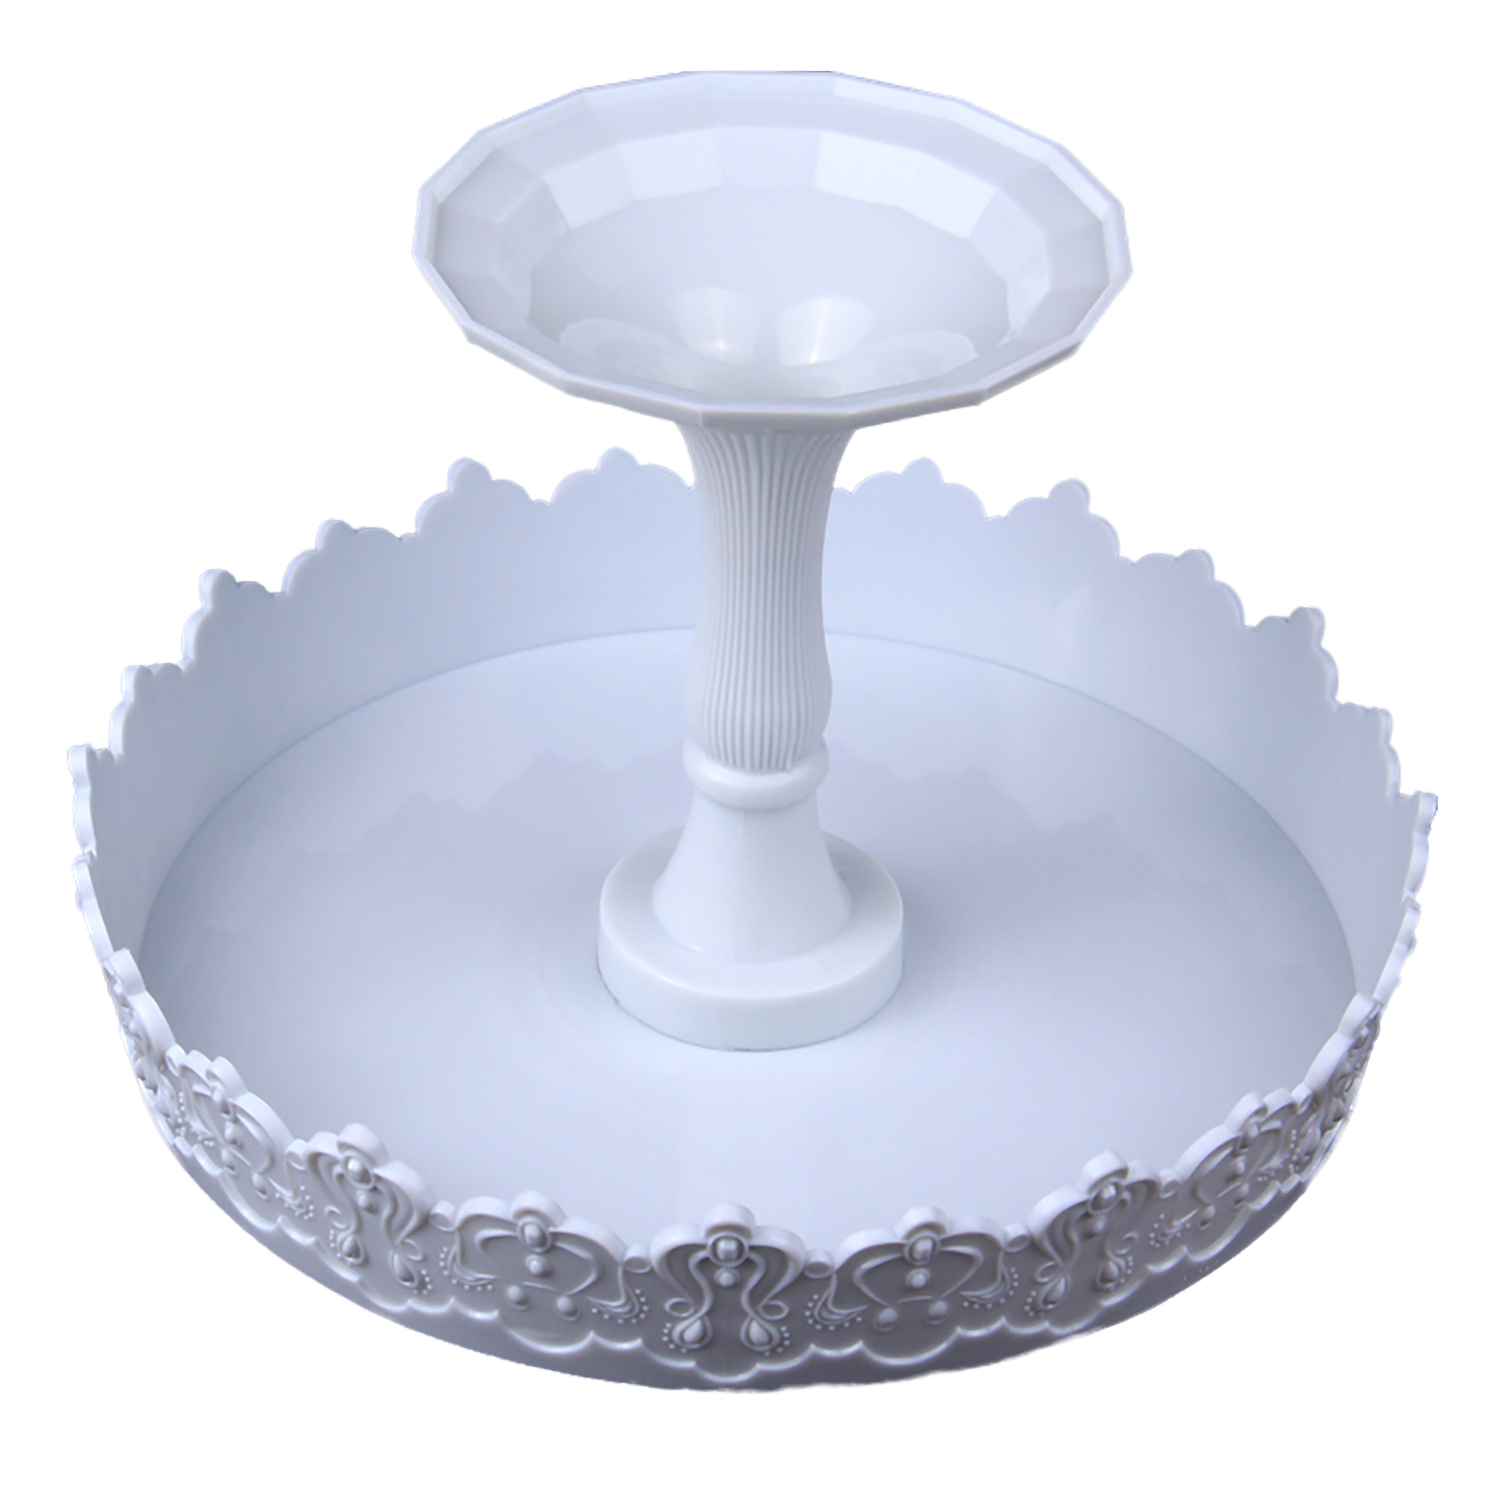 HB0989 Plastic Cake Decorating Retro Turntable Stand(8.9''x5.9'' )for Wedding Decoration